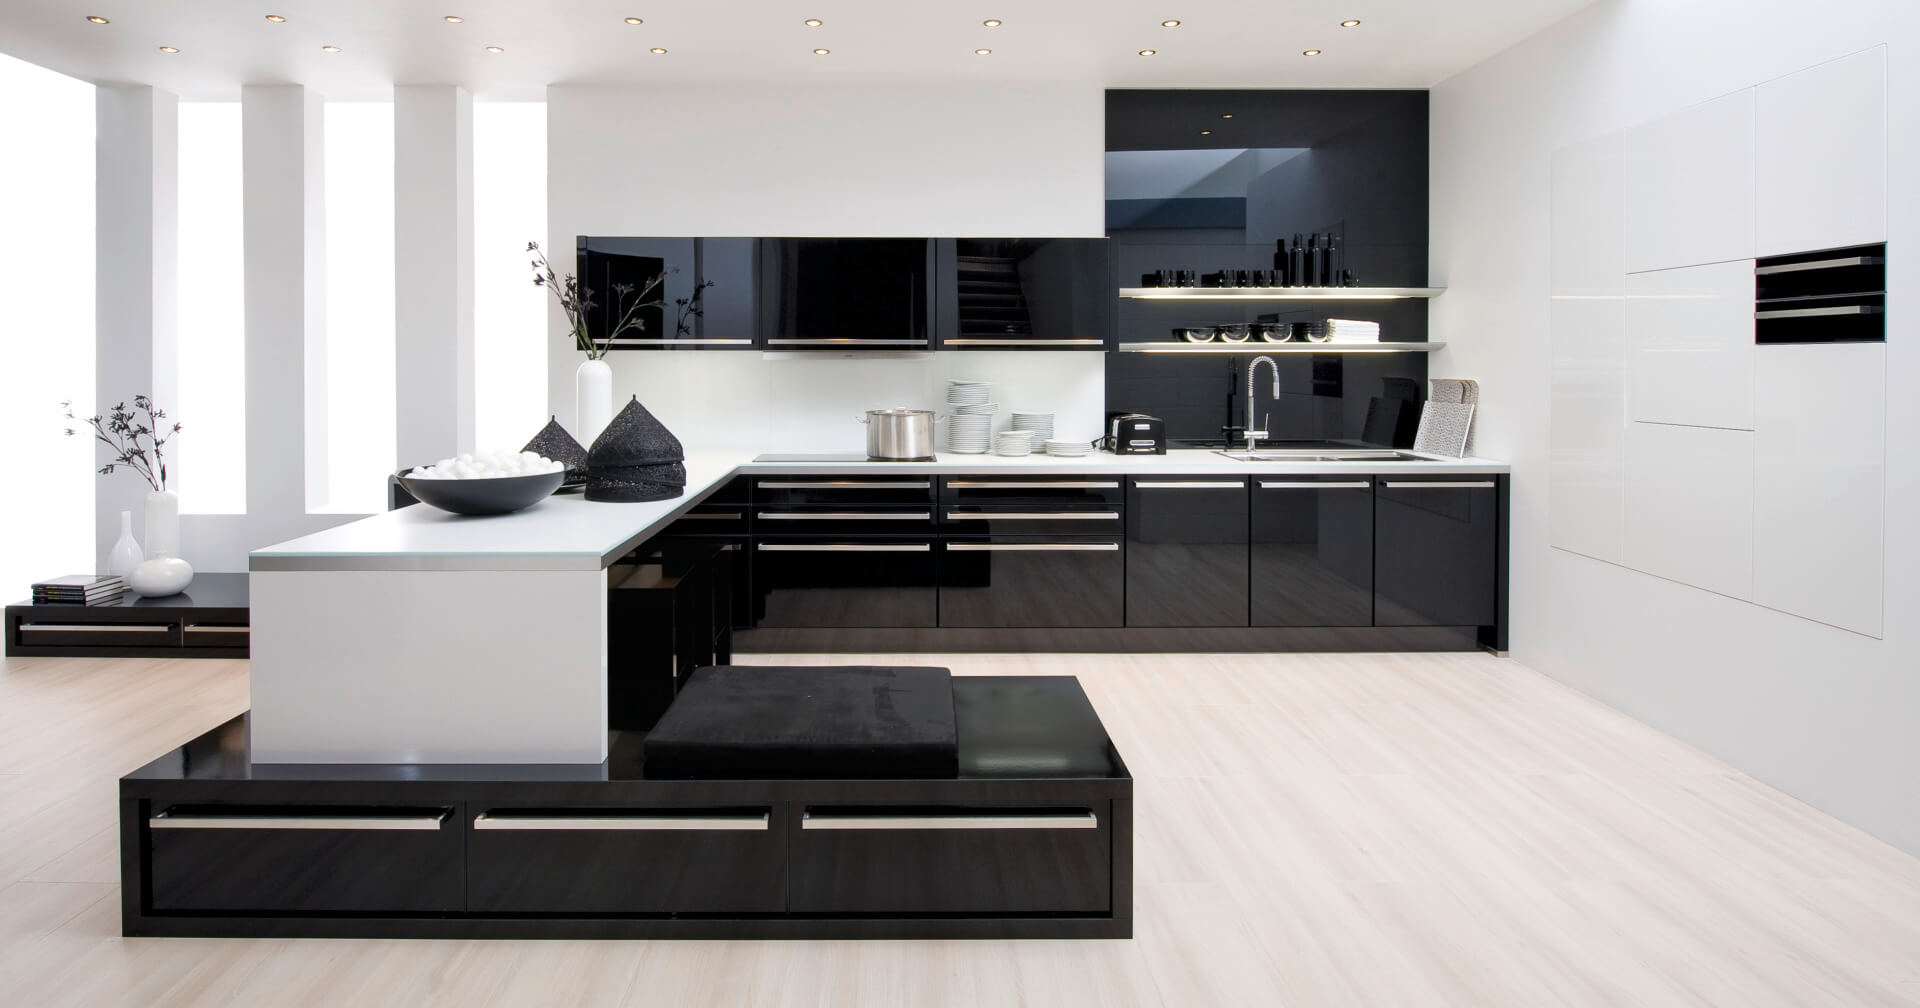 Nolte-Kitchens-Glass-Tech-Gallery6